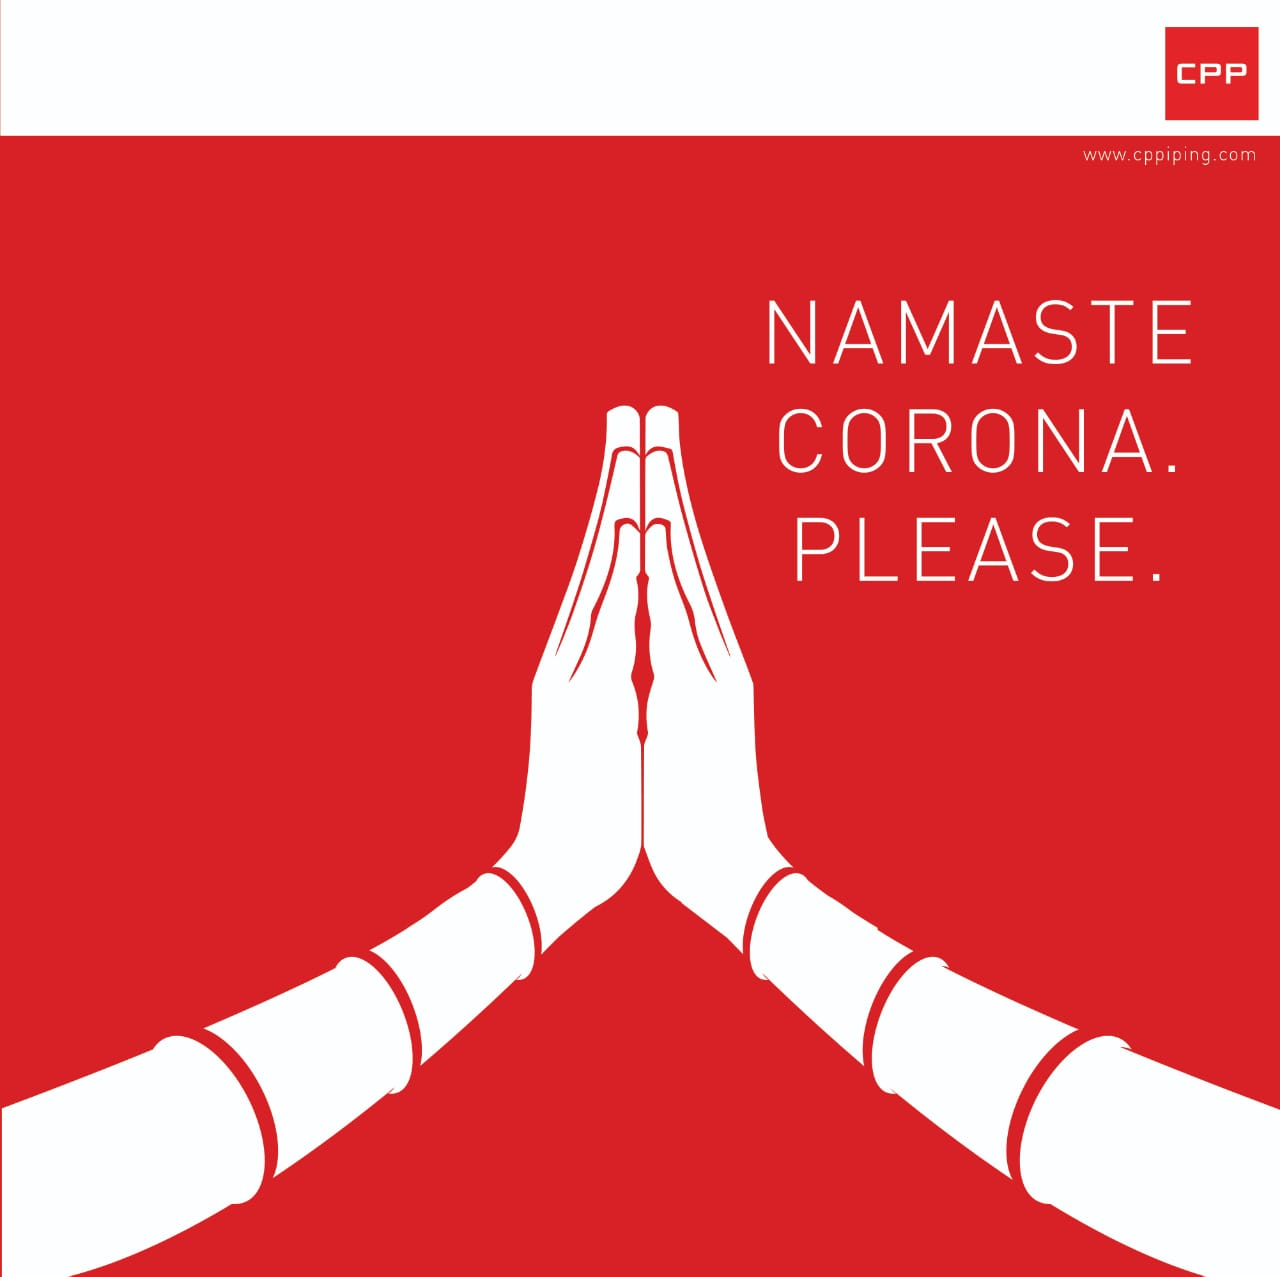 Namaste. Remain safe, happy and indoors